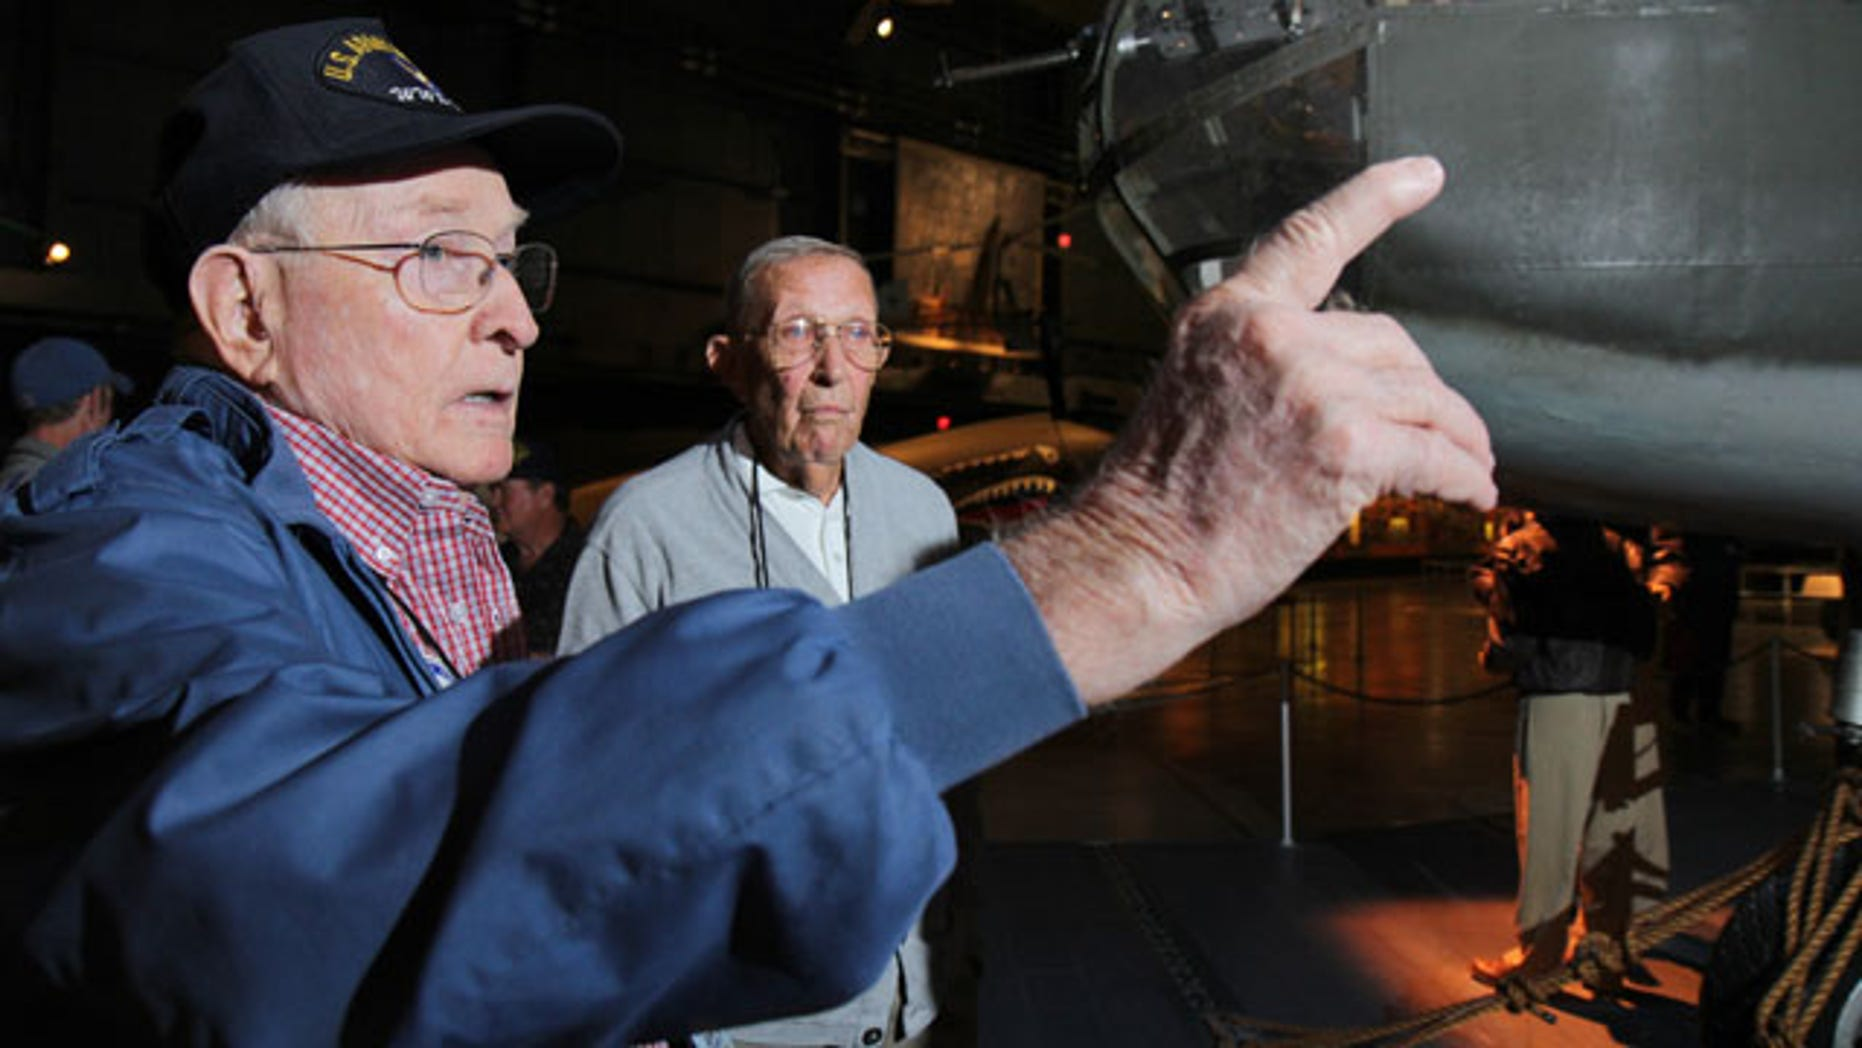 September 27, 2013: Former B-25 crewman Robert Crouse and former pilot Paul Young talk about their World War II experiences during a reunion of the 57th Bomb Wing in front of a B-25 bomber in the U.S. Air Force Museum at Wright Patterson Air Force base in Dayton, Ohio. (AP Photo)